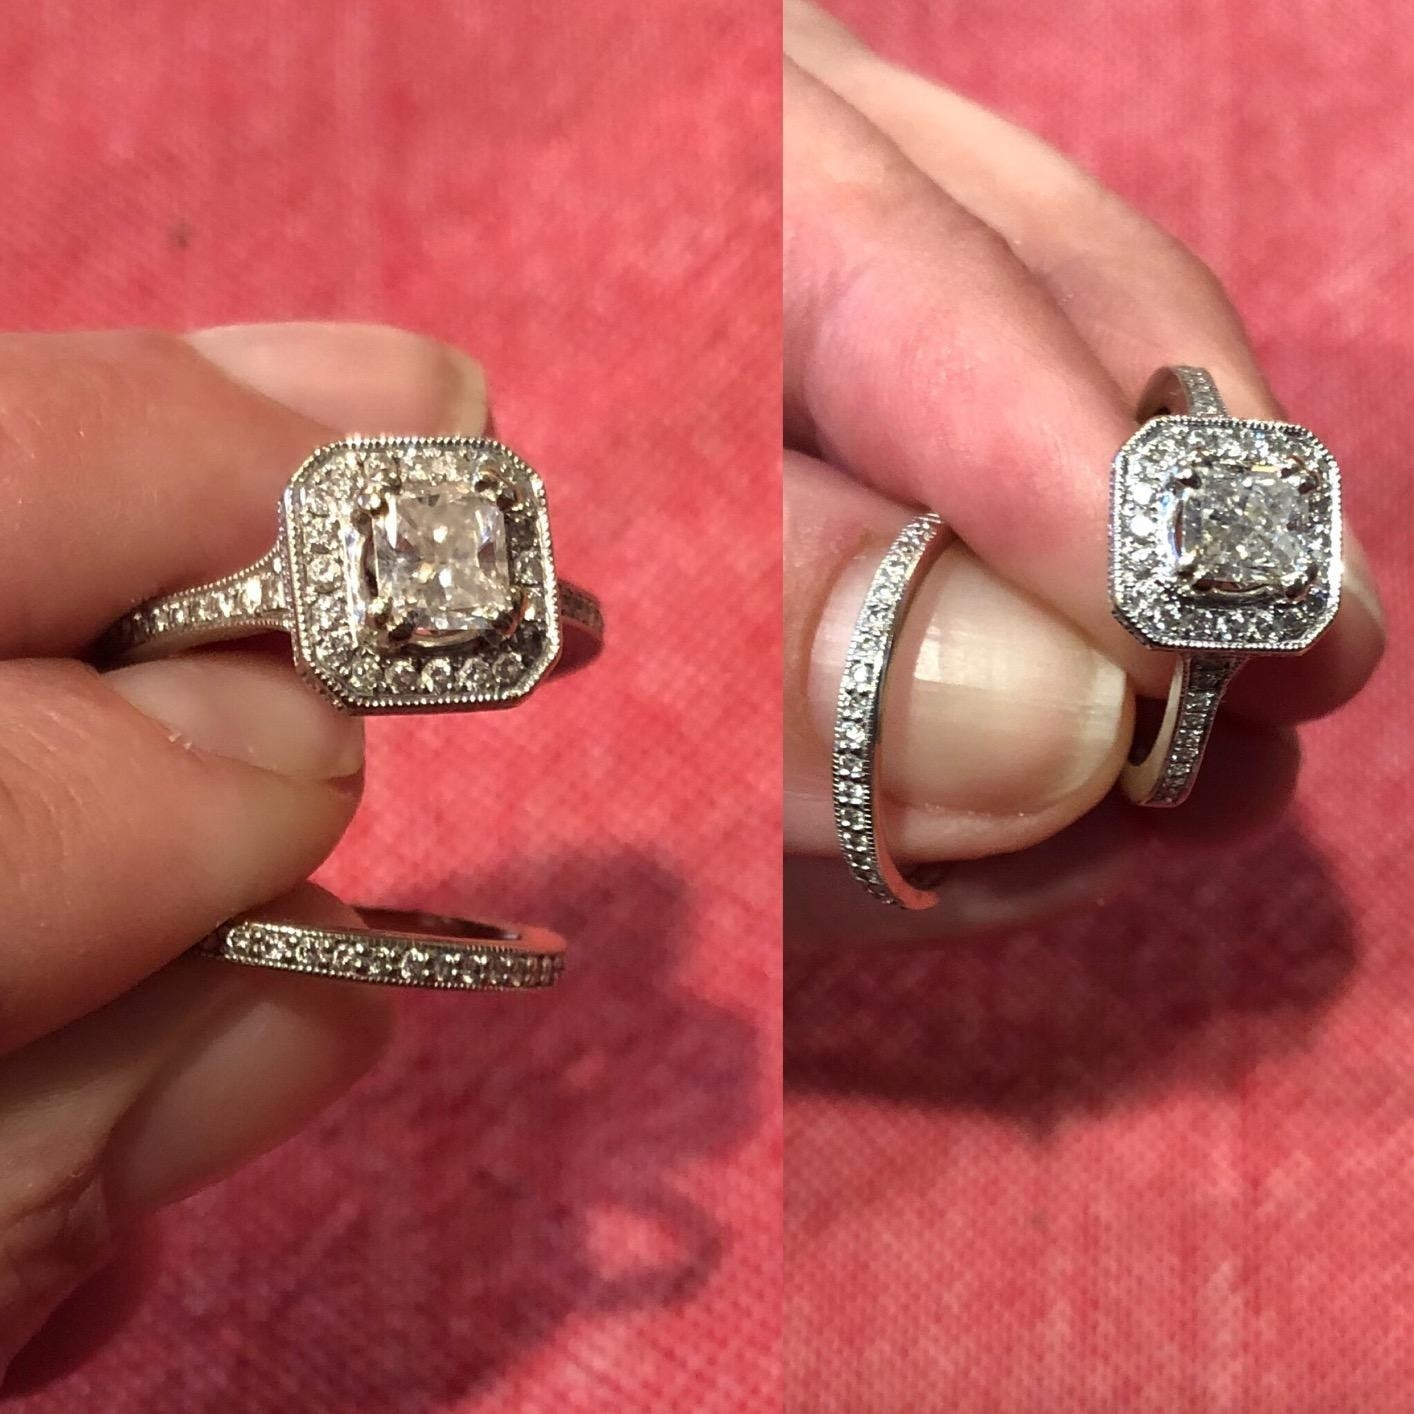 A reviewer showing rings with foggy looking diamonds at first, then looking bright and shiny after